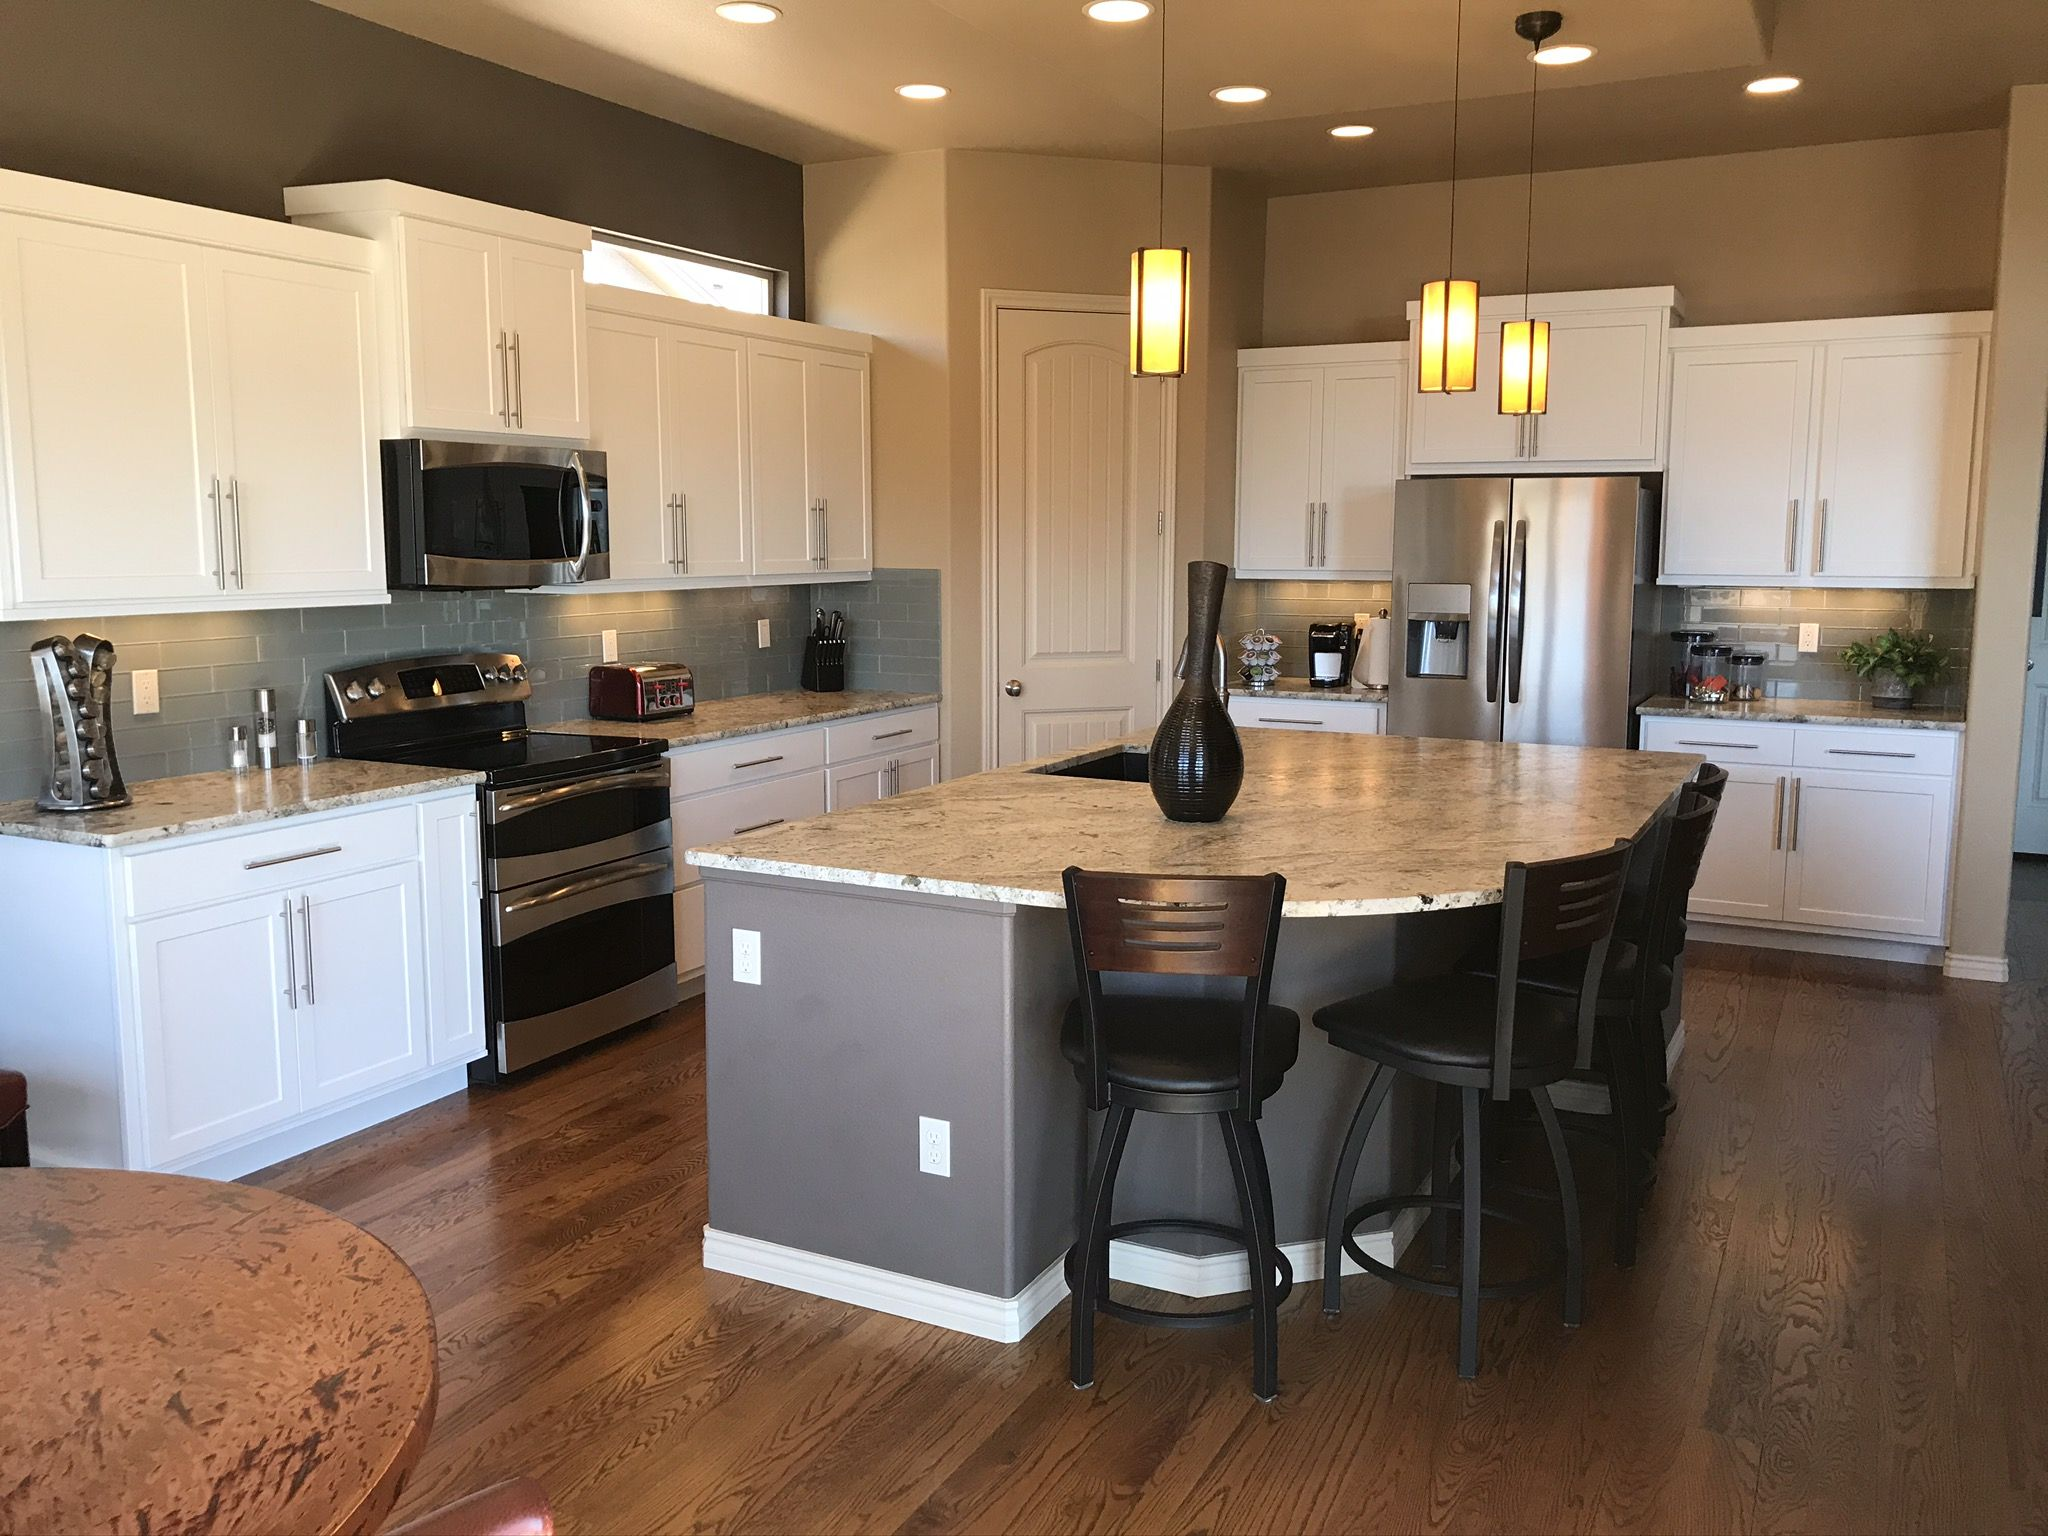 Kitchen Tune Up Colorado Springs Co Refacing In 2020 Reface Cabinet Refacing Kitchen Prices